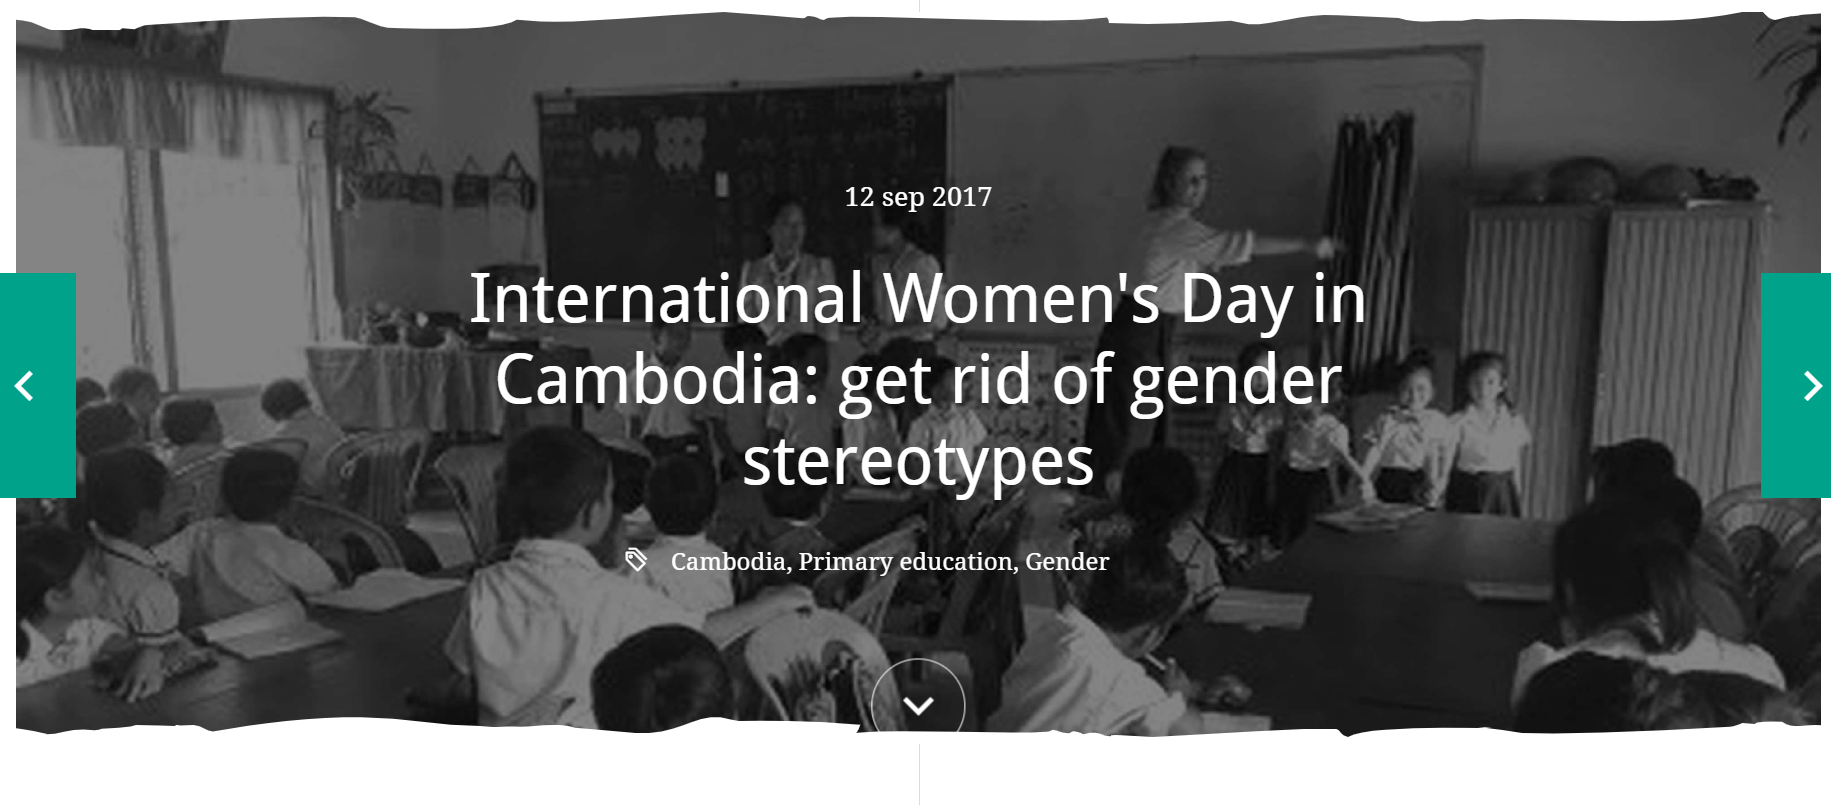 International Women's Day in Cambodia: get rid of gender stereotypes